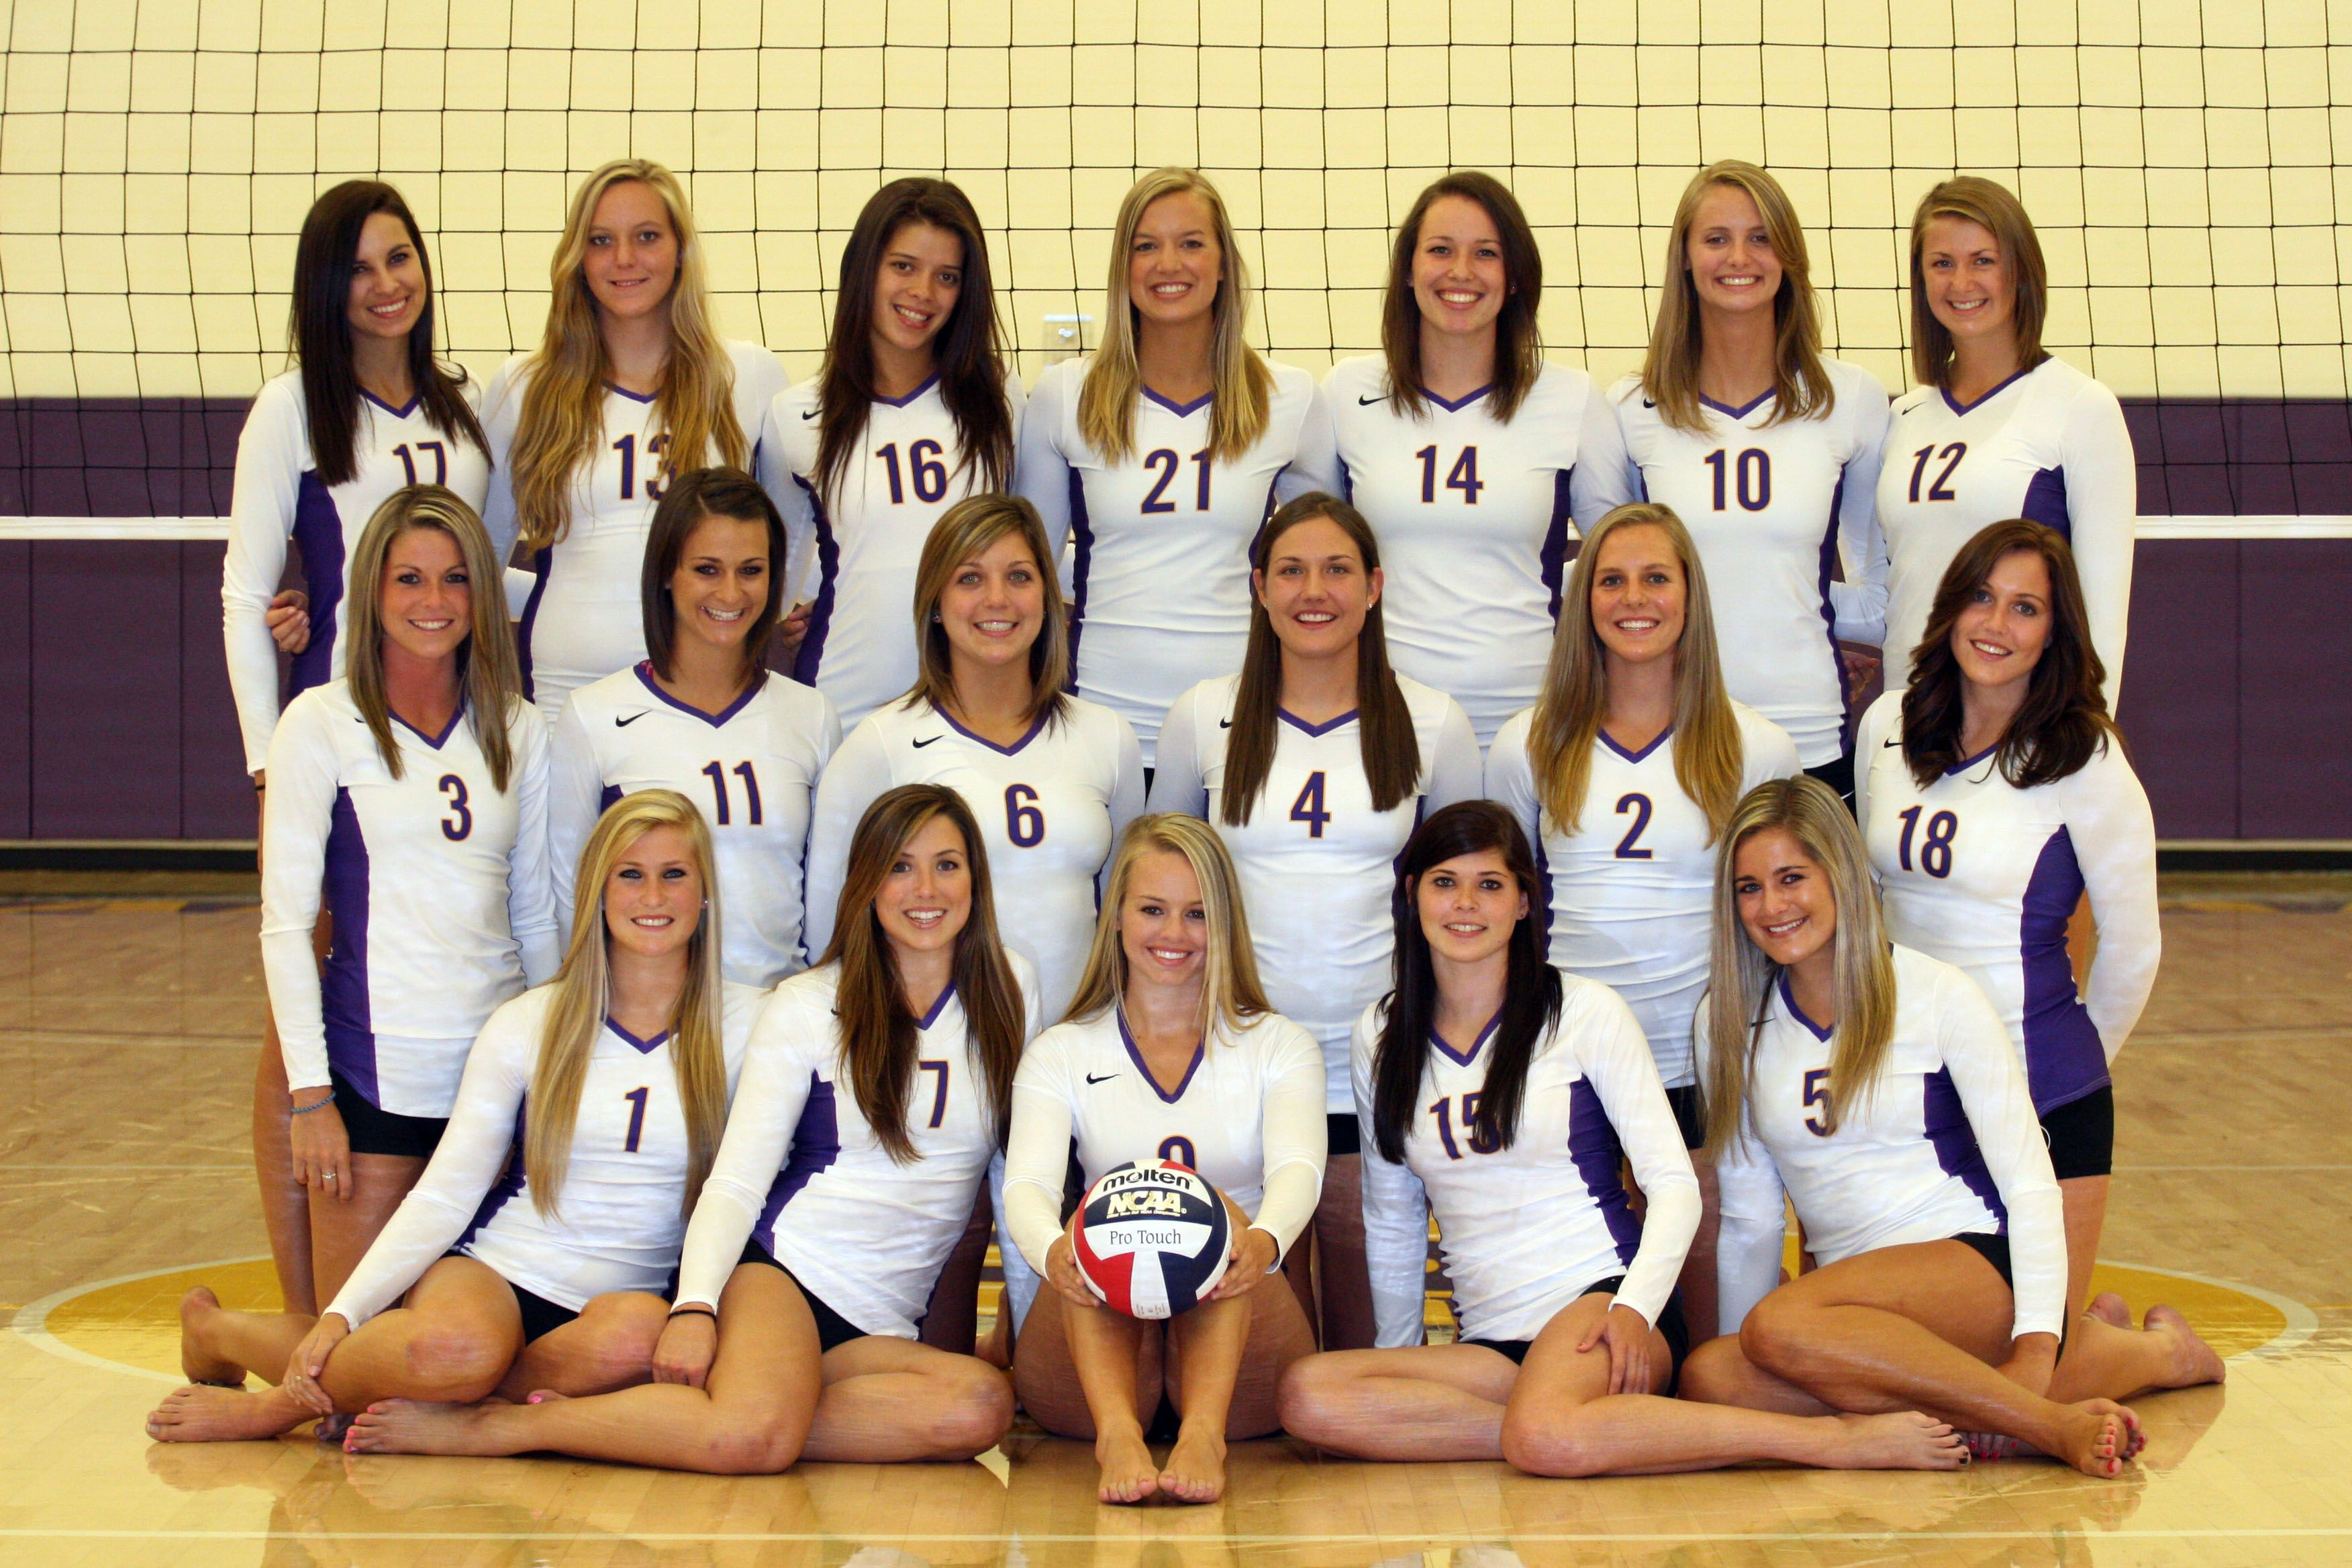 Cal Lutheran Volleyball 2010 Season Preview Volleyball Photography Volleyball Poses Volleyball Team Photos